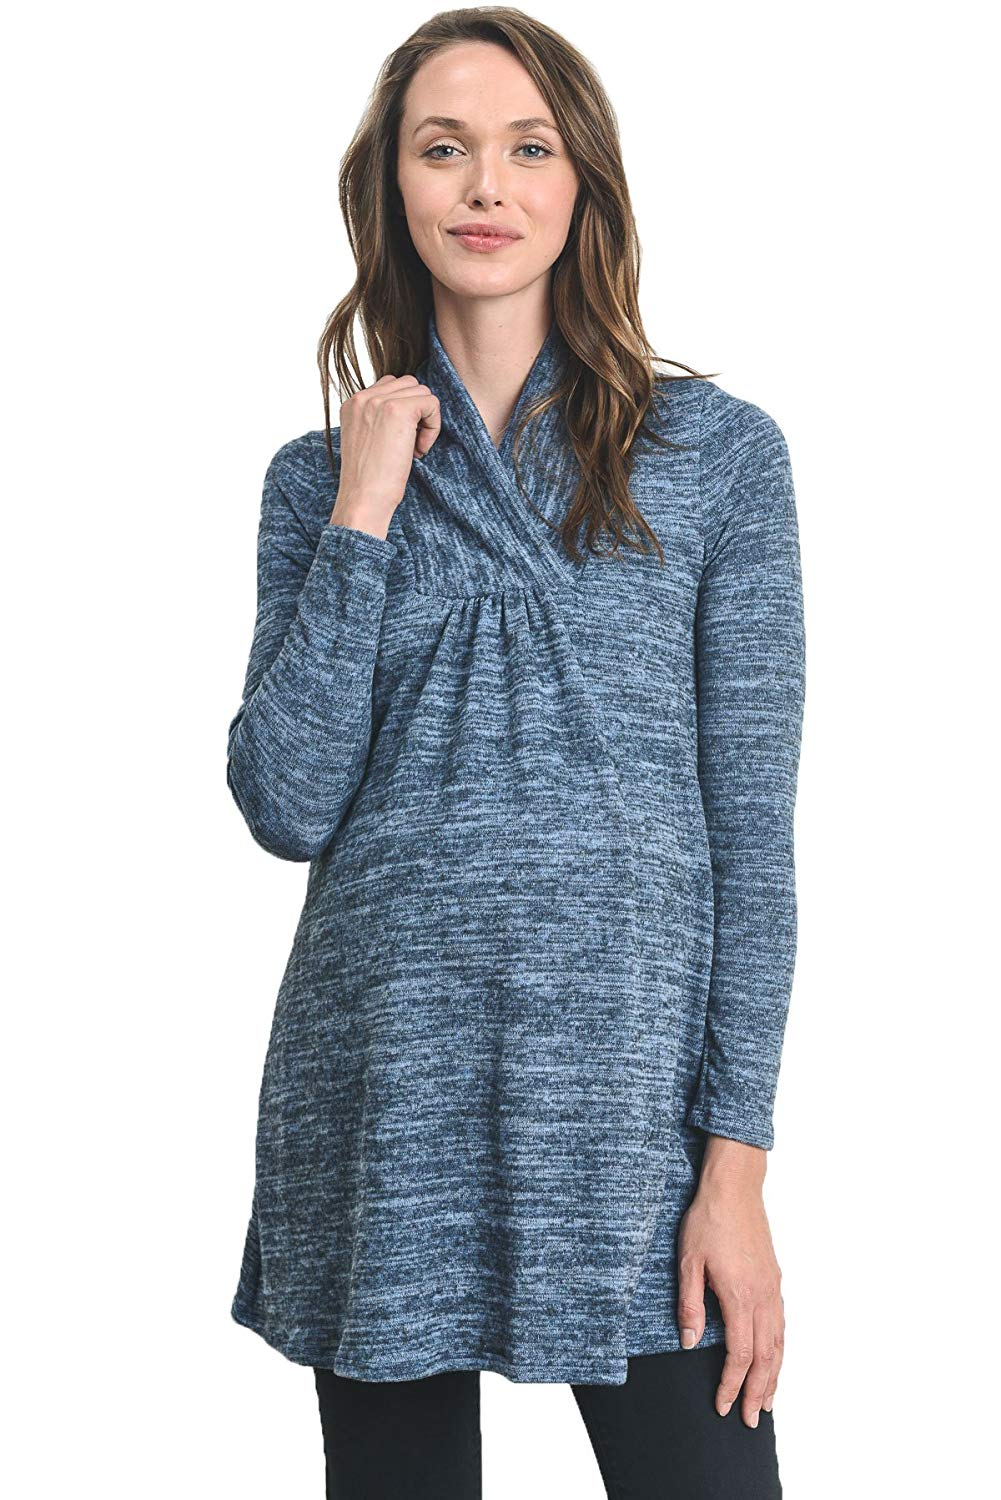 Denim Knit Maternity Tunic Top - Mommylicious